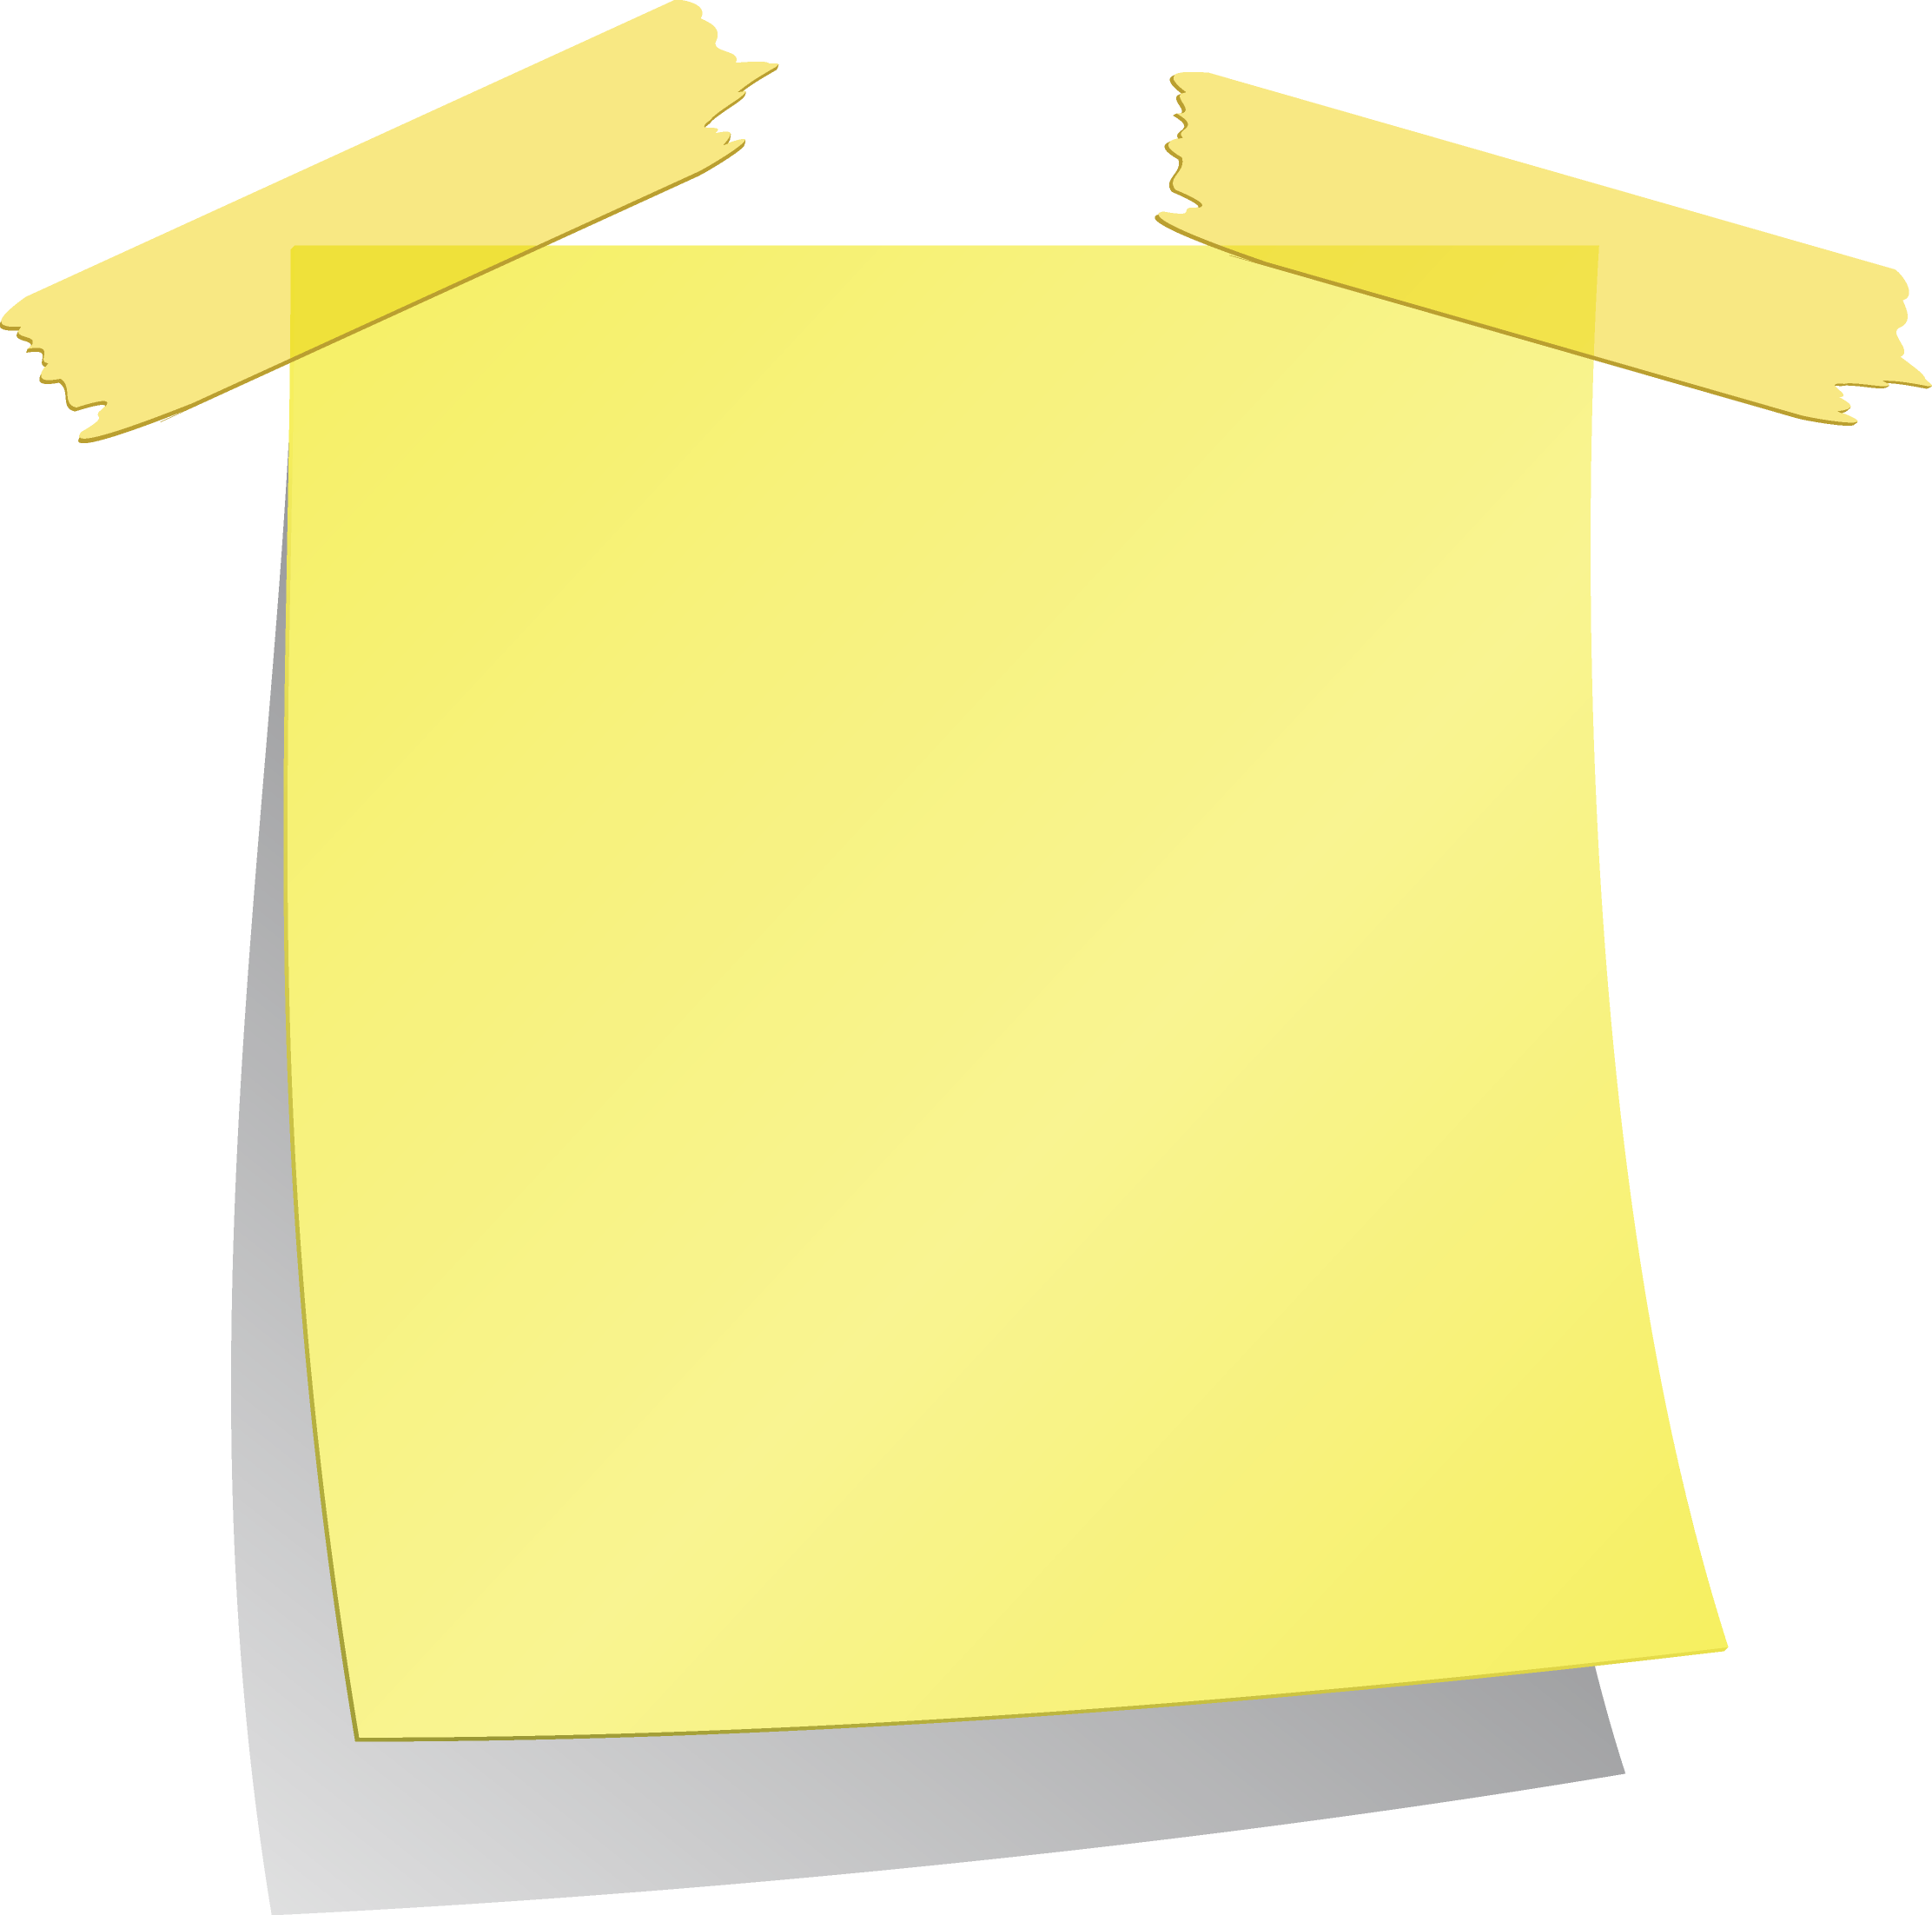 Sticky notes png image. Clipart waves yellow